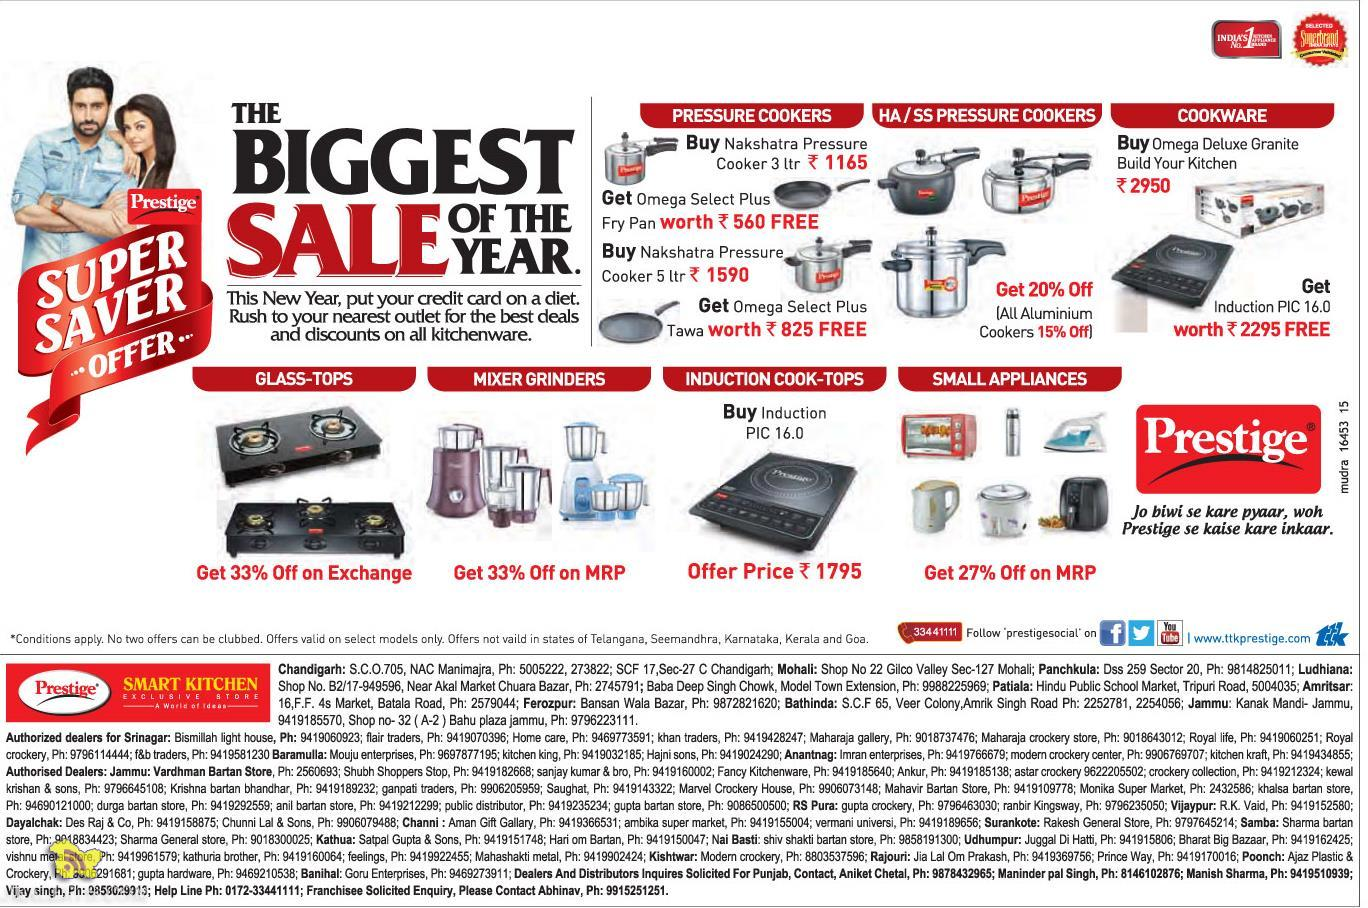 Prestige The Biggest sale of the year